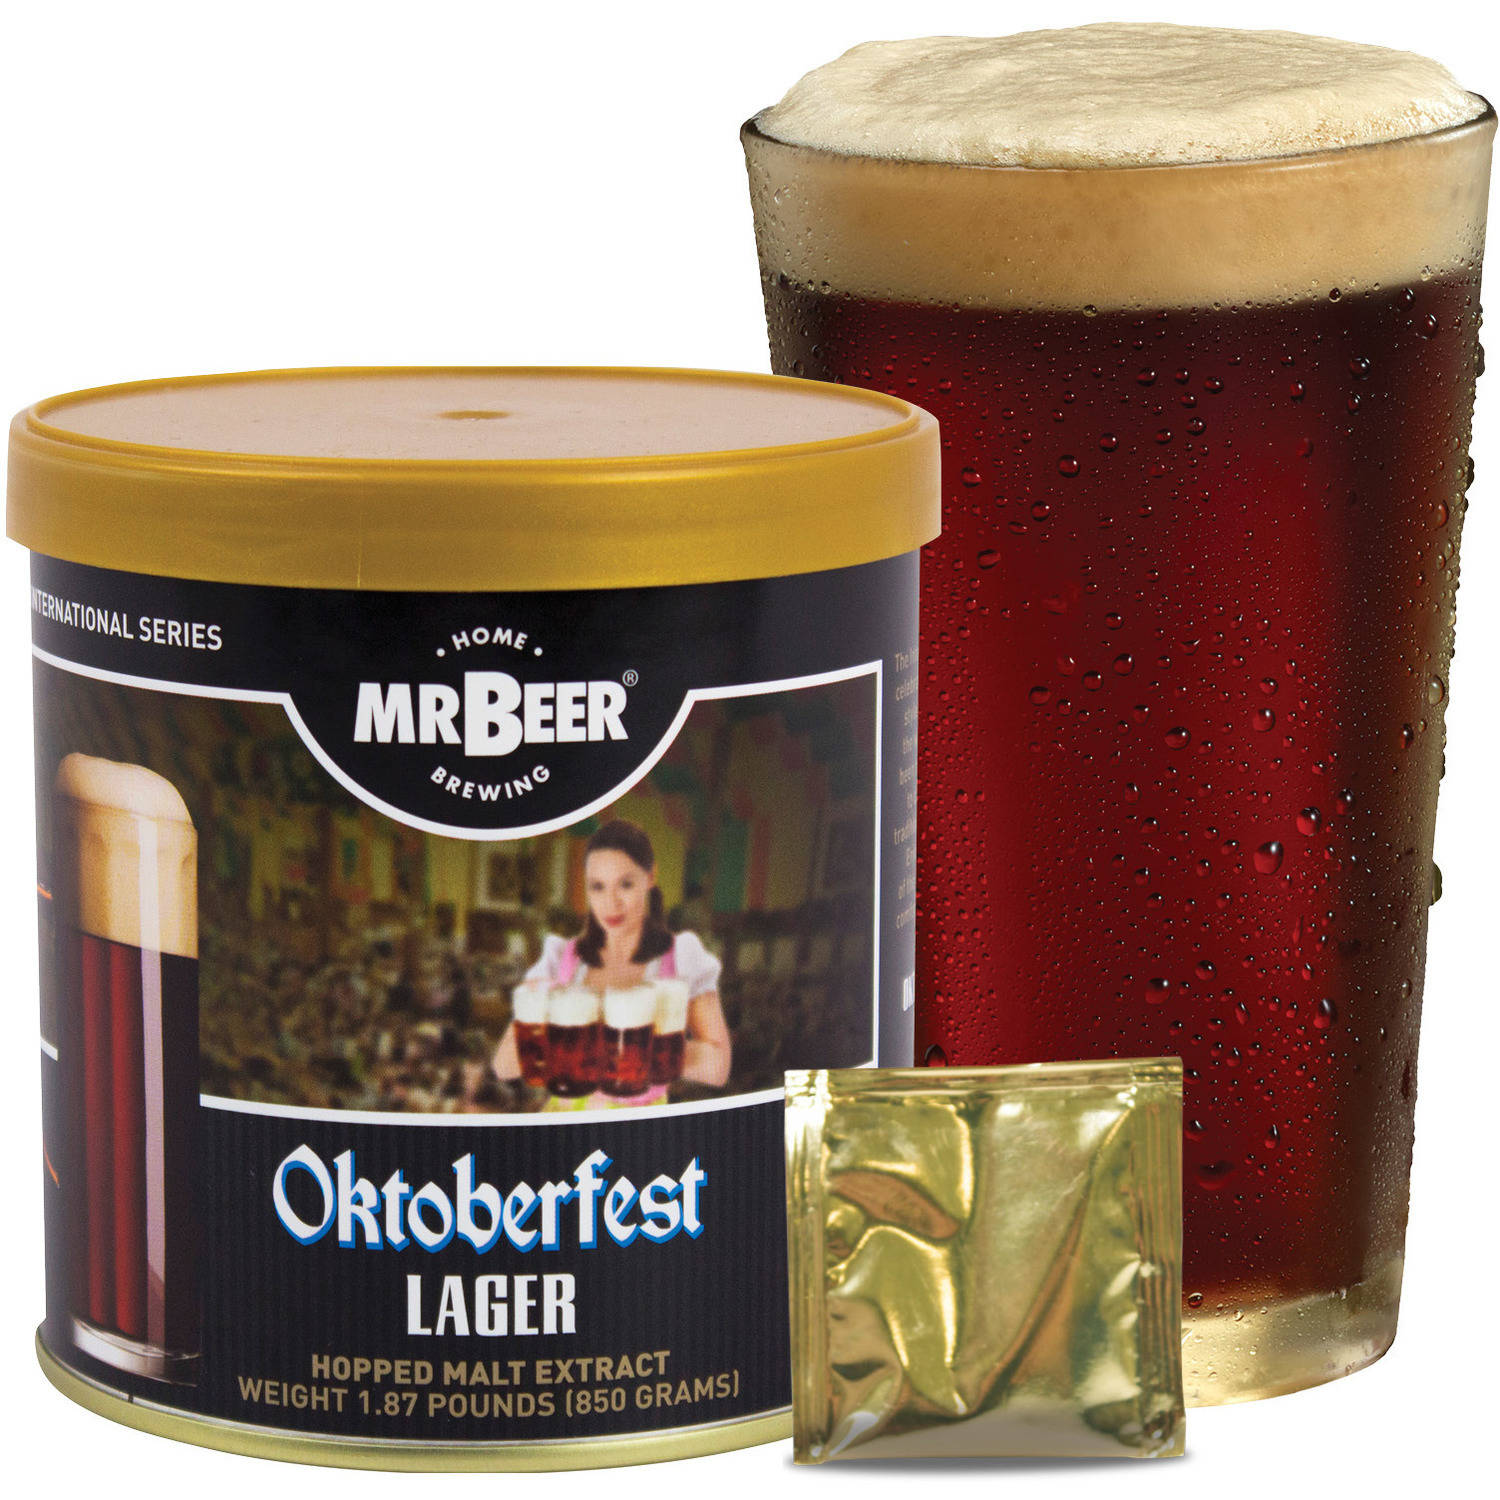 Mr. Beer Oktoberfest Lager 2 Gallon Homebrewing Craft Beer Refill Kit, Contains Hopped Malt Extract Designed for Consistent, Simple and Efficient Homebrewing